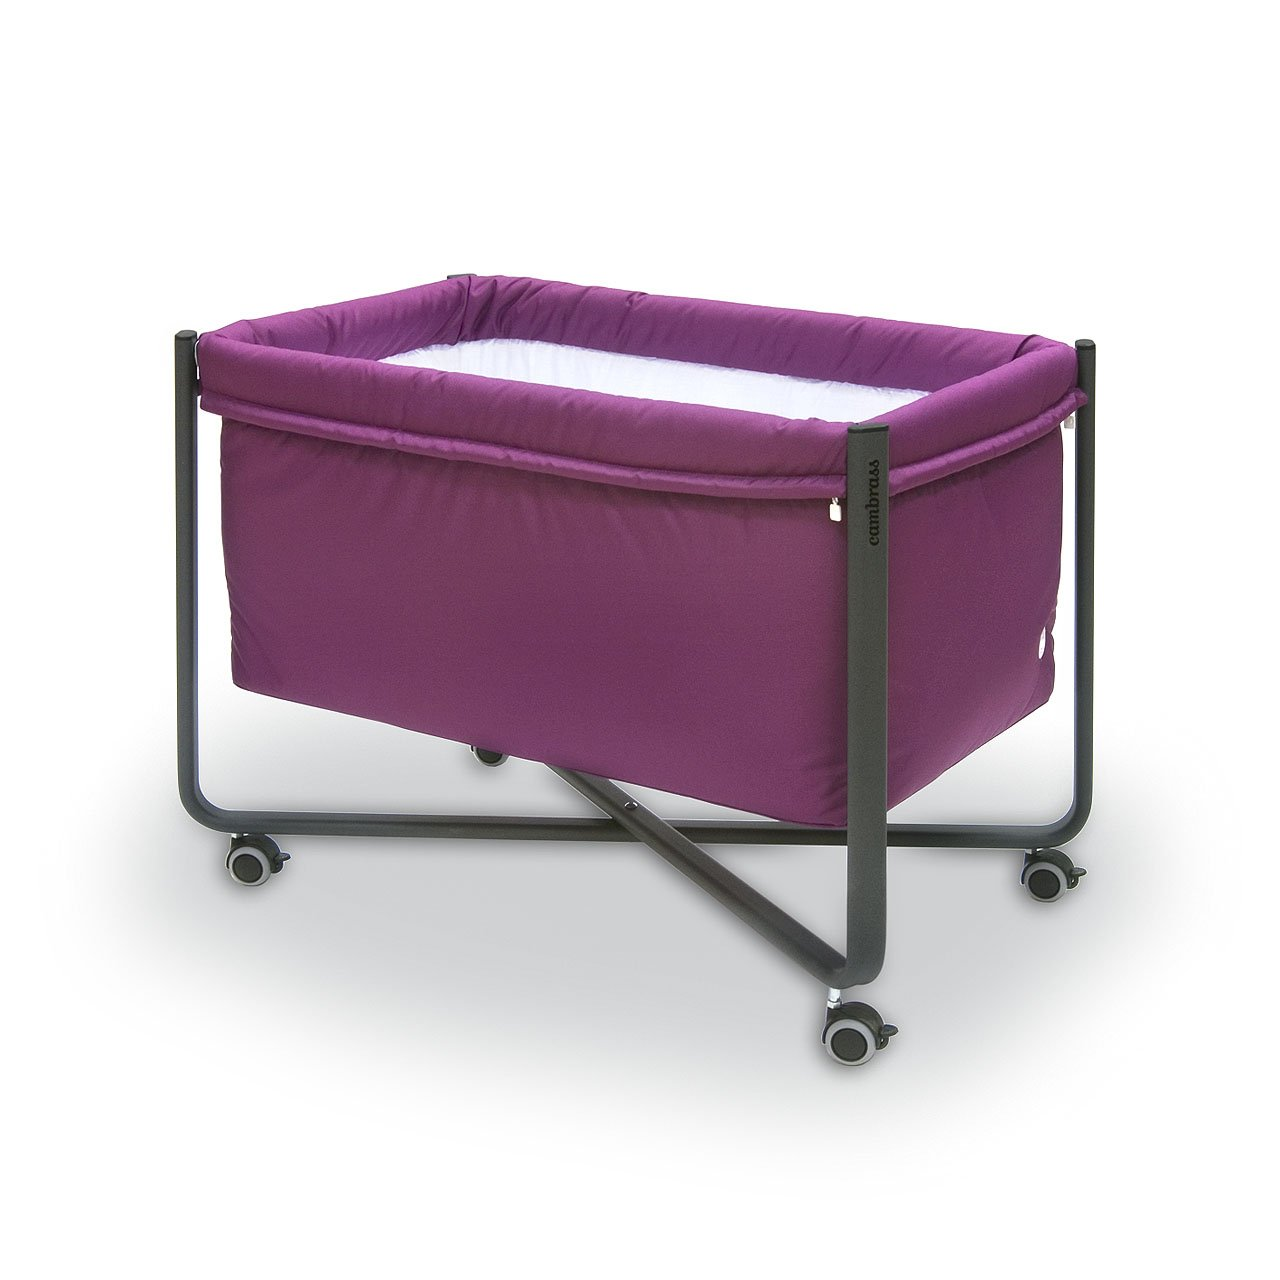 Amazon.com : Cambrass 56.5 x 92 x 64.5 cm Bed Urban Liso E (Small, Purple/ Black) : Baby